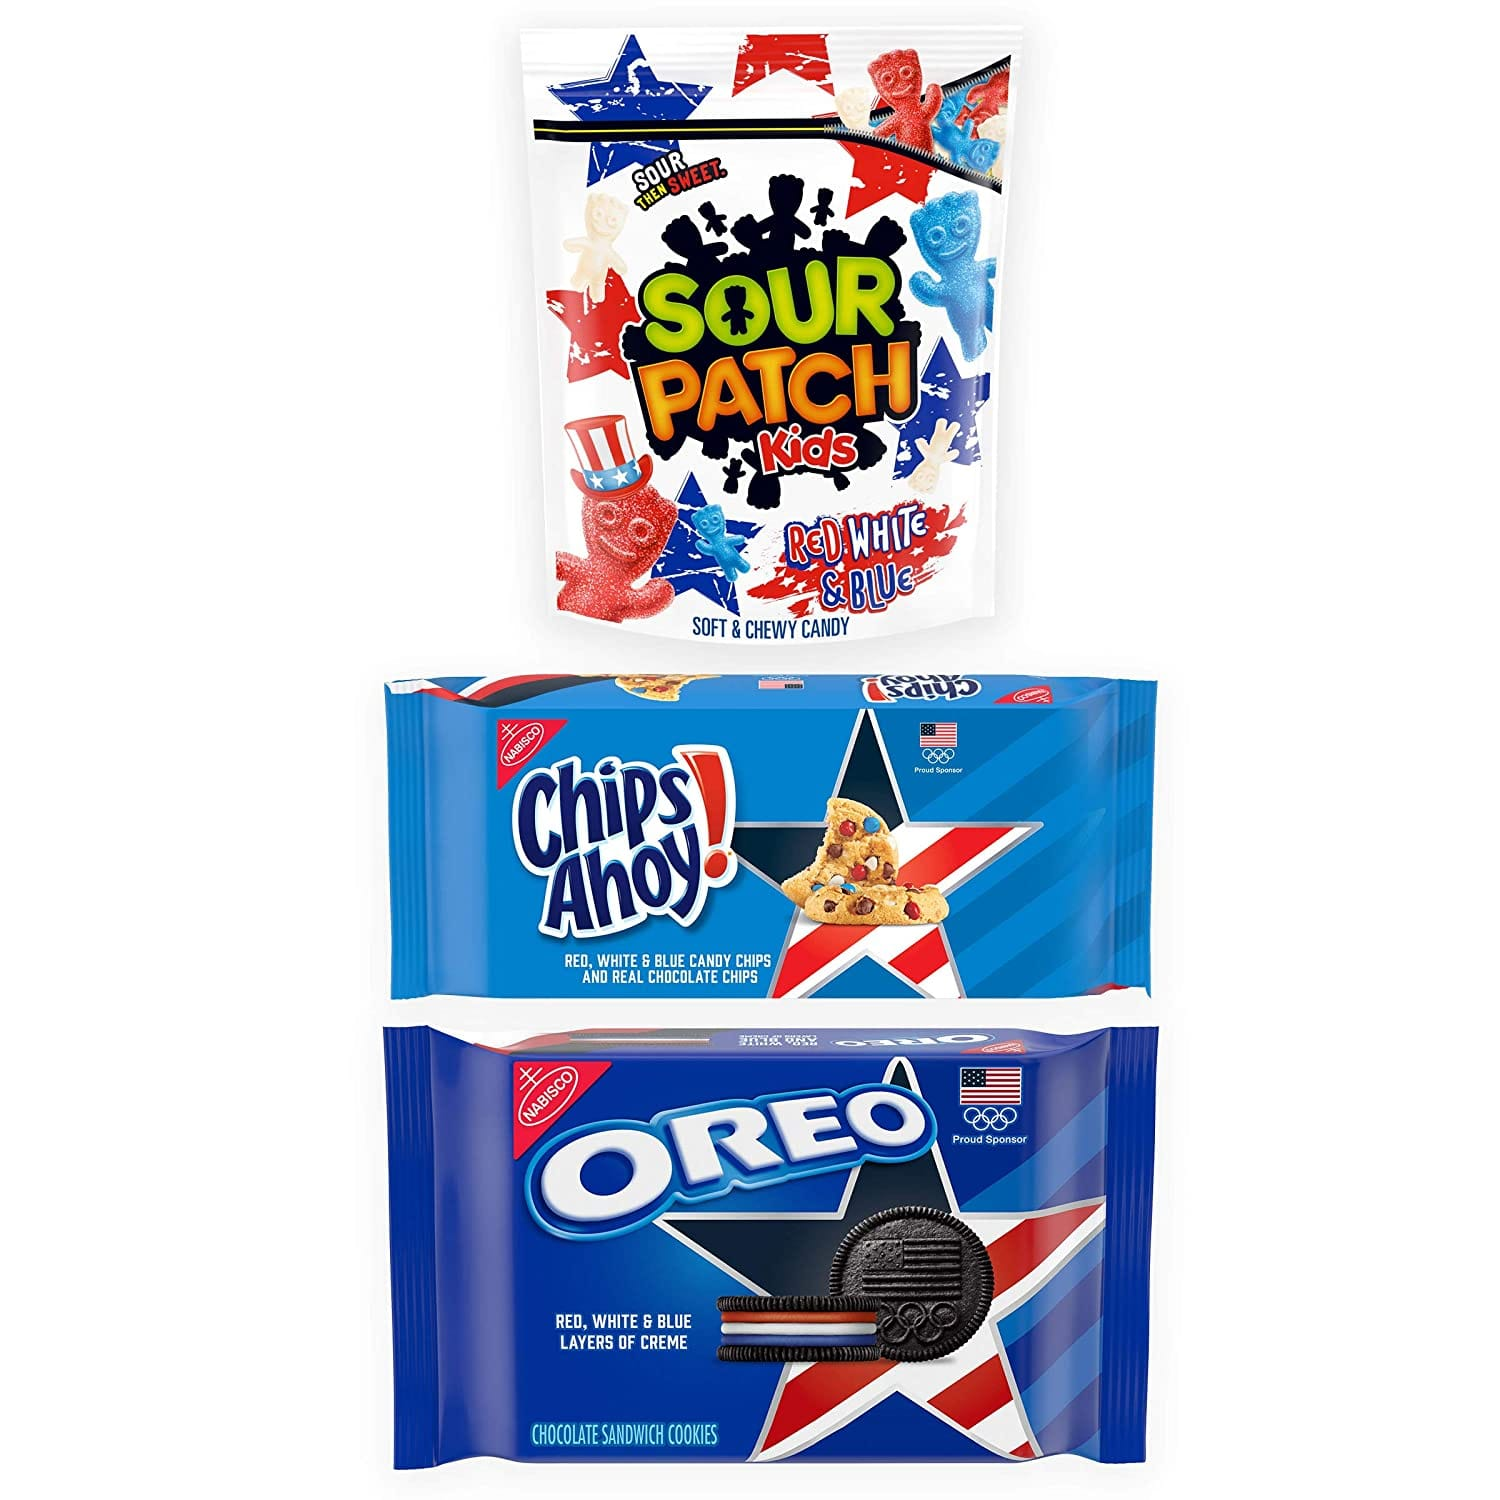 3-Pack Team USA Oreo, Chips Ahoy!, & Sour Patch Kids Variety Pack